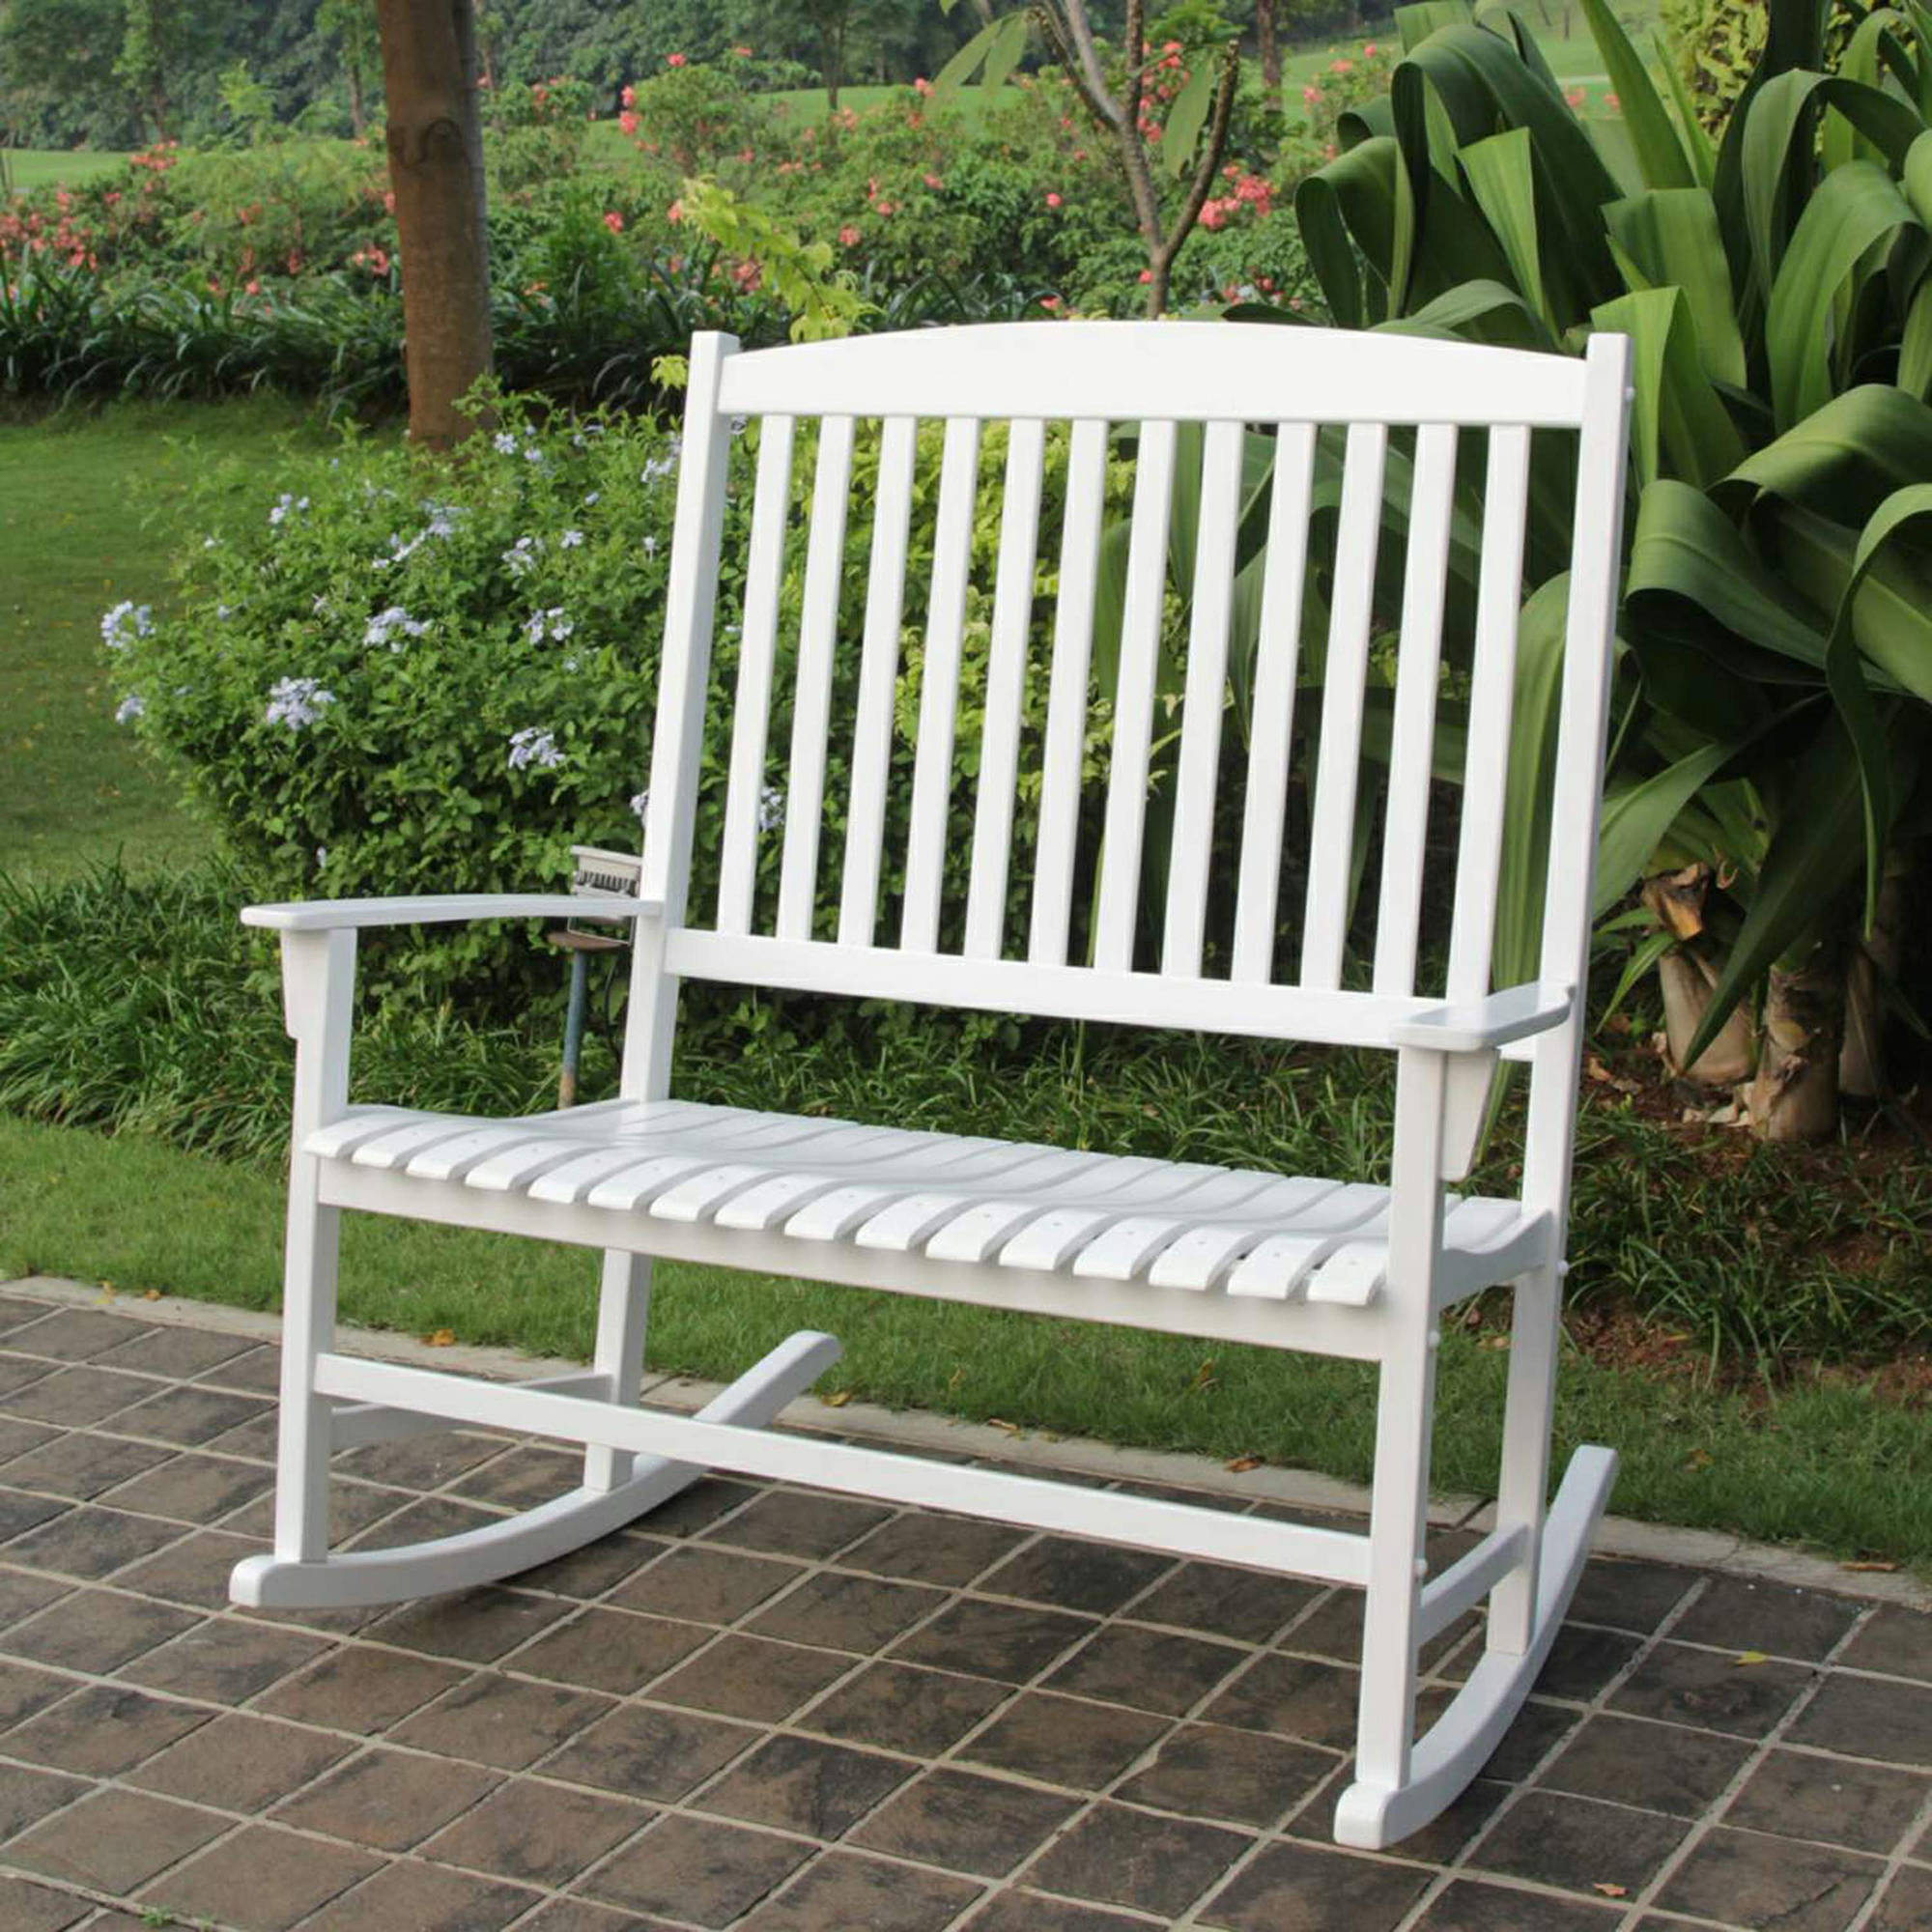 patio loveseat white hardwood outdoor rocking chair for 2 - Patio Rocking Chairs